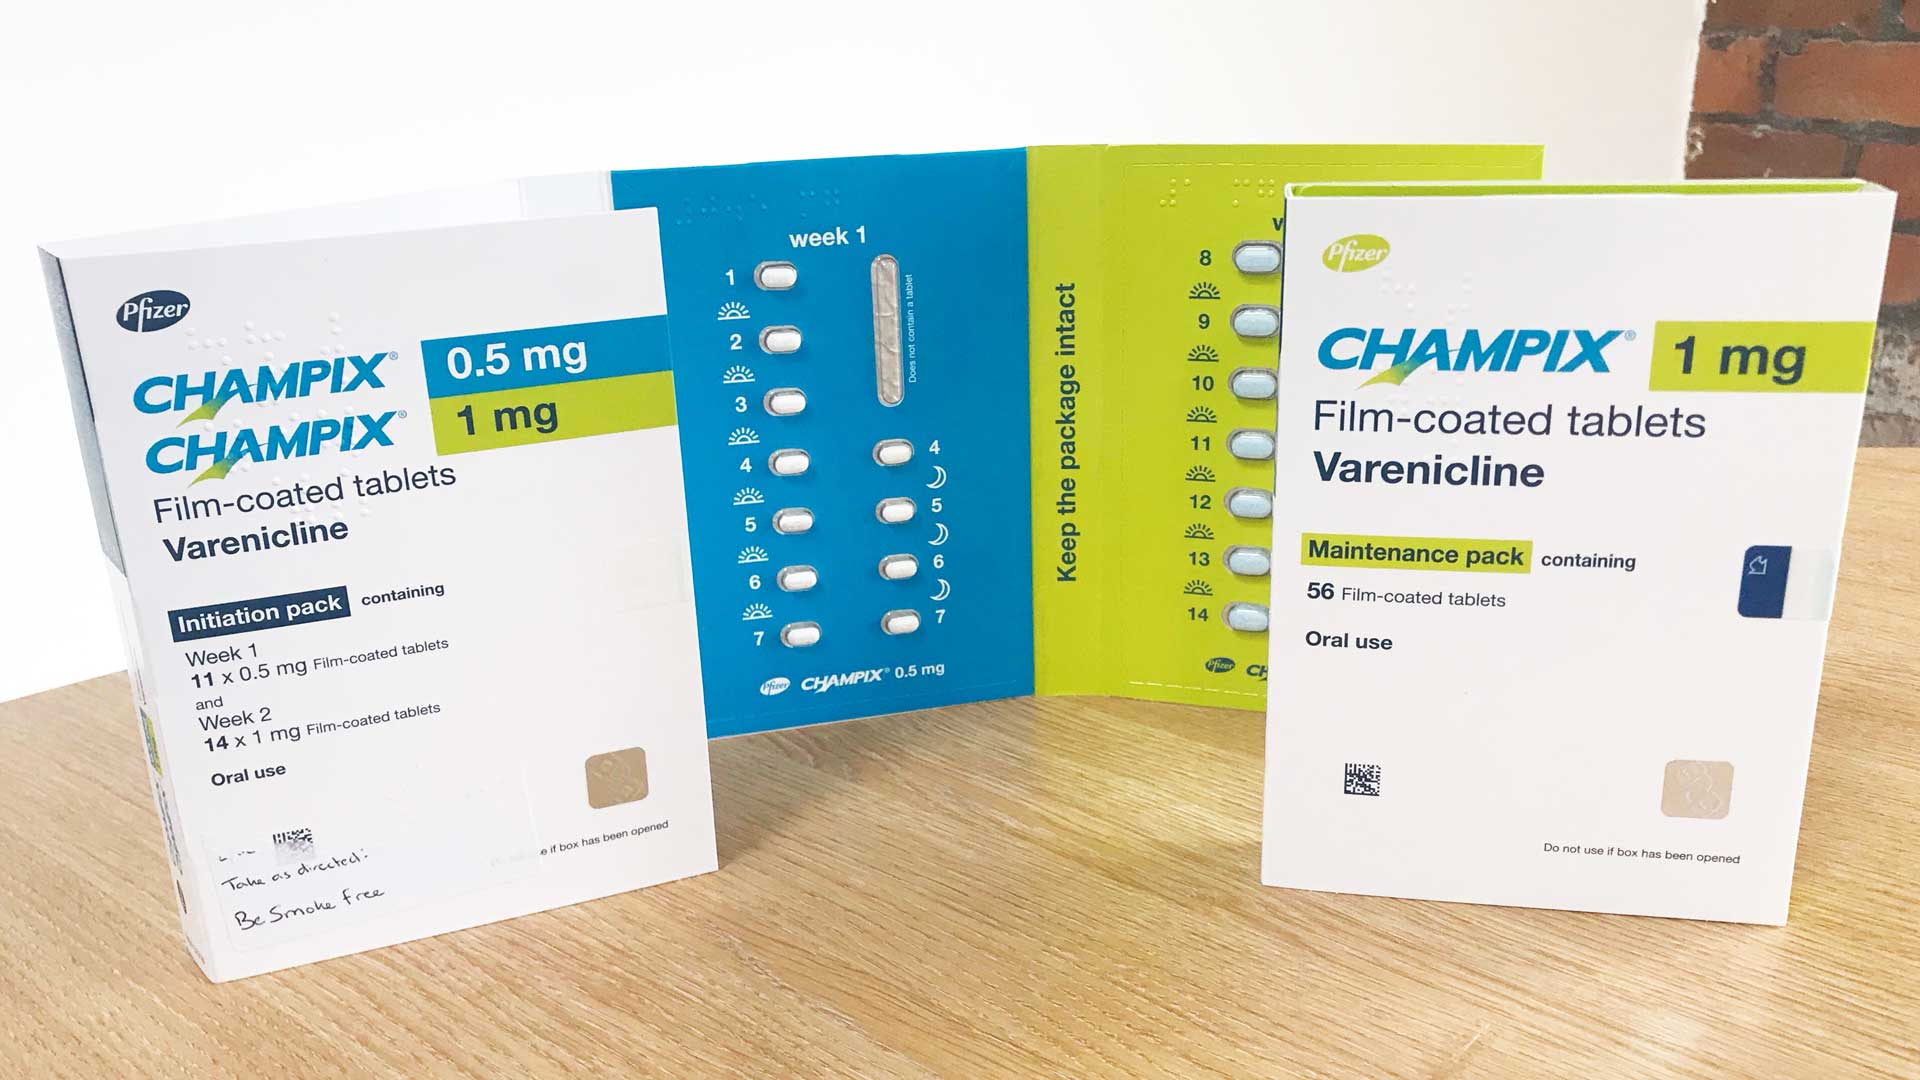 Photo of champix tablets